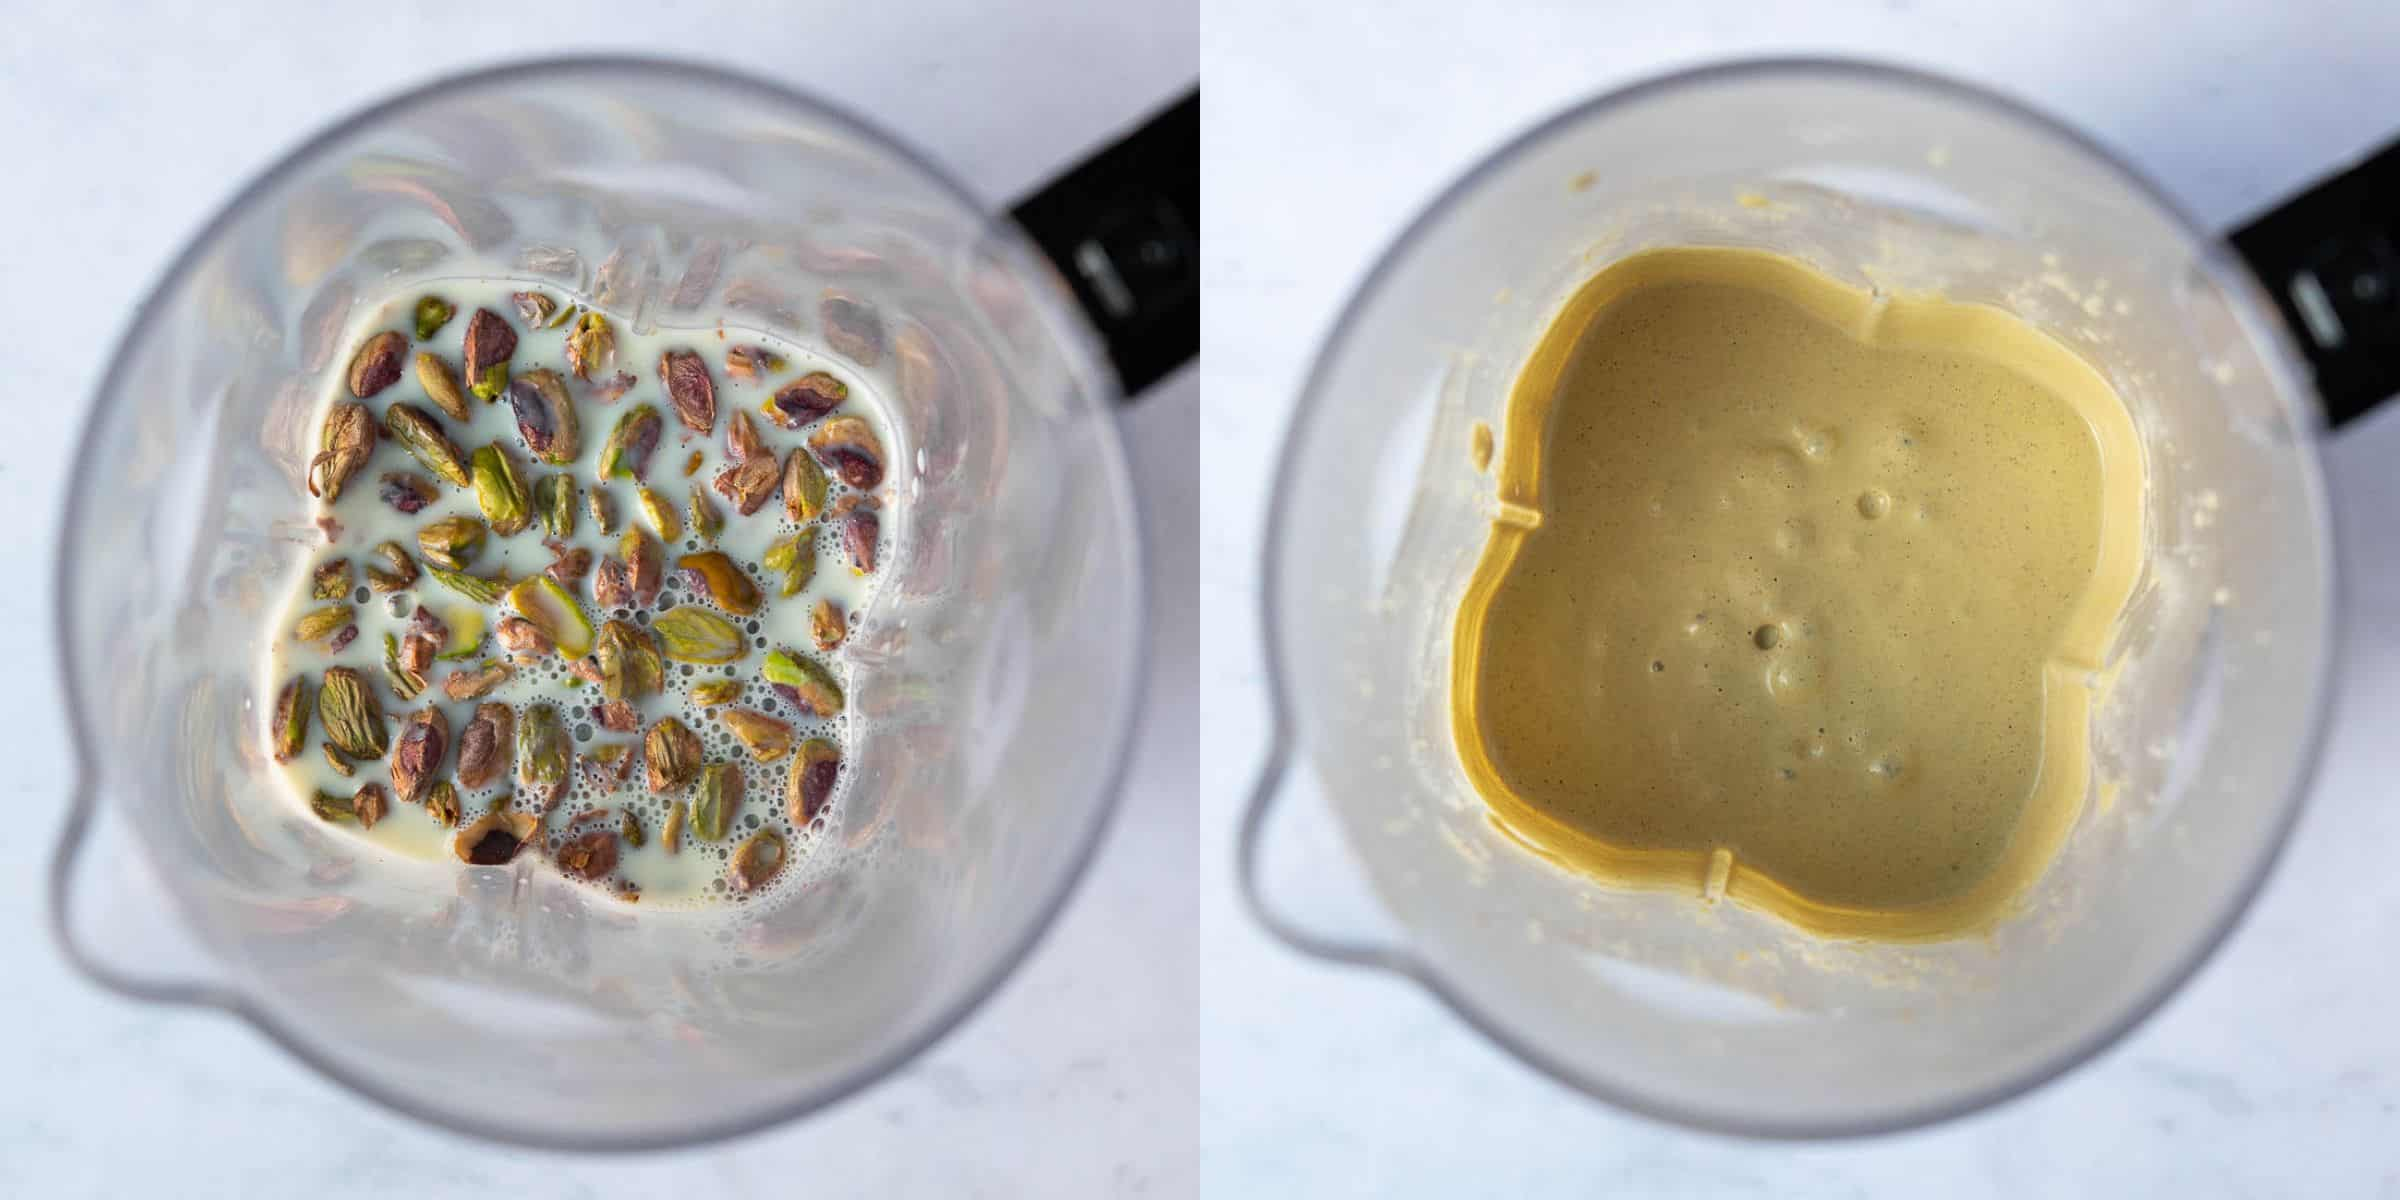 Step 2, a two image collage of blending the pistachios and milk.